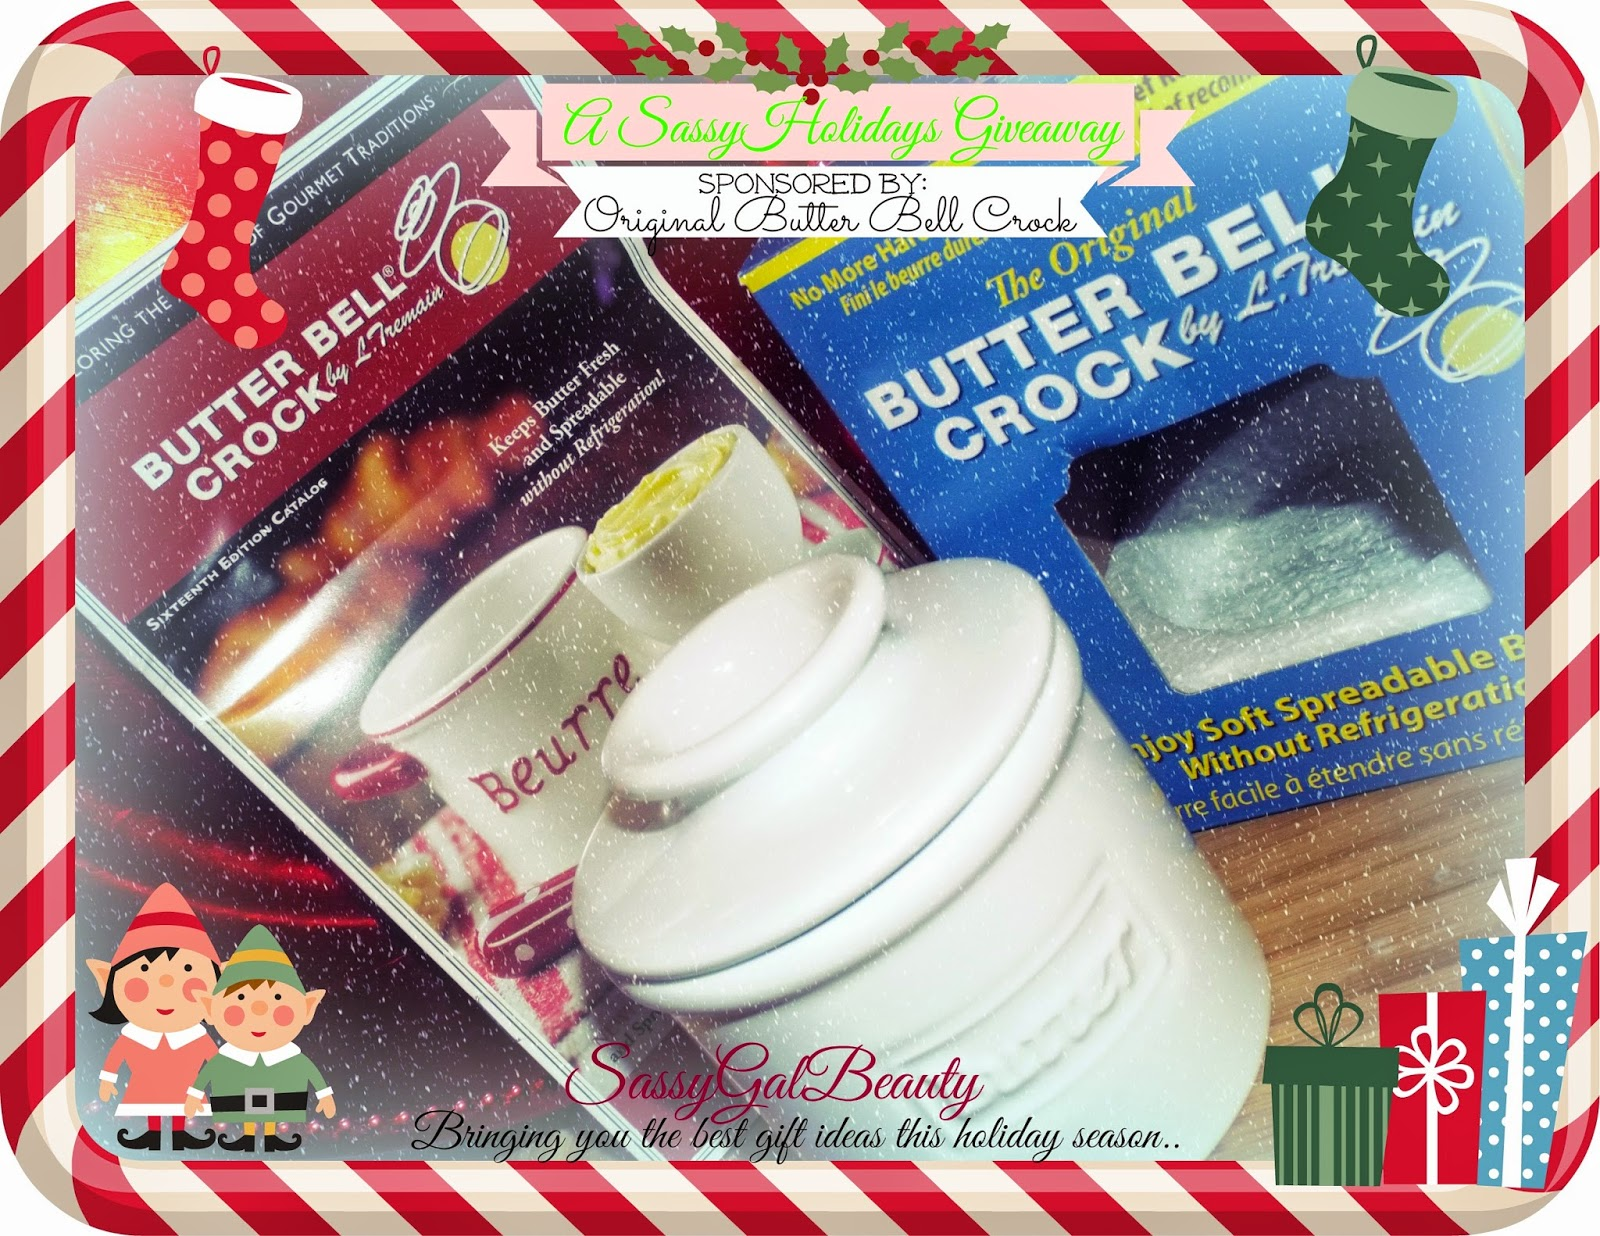 Original Butter Bell Crock Giveaway